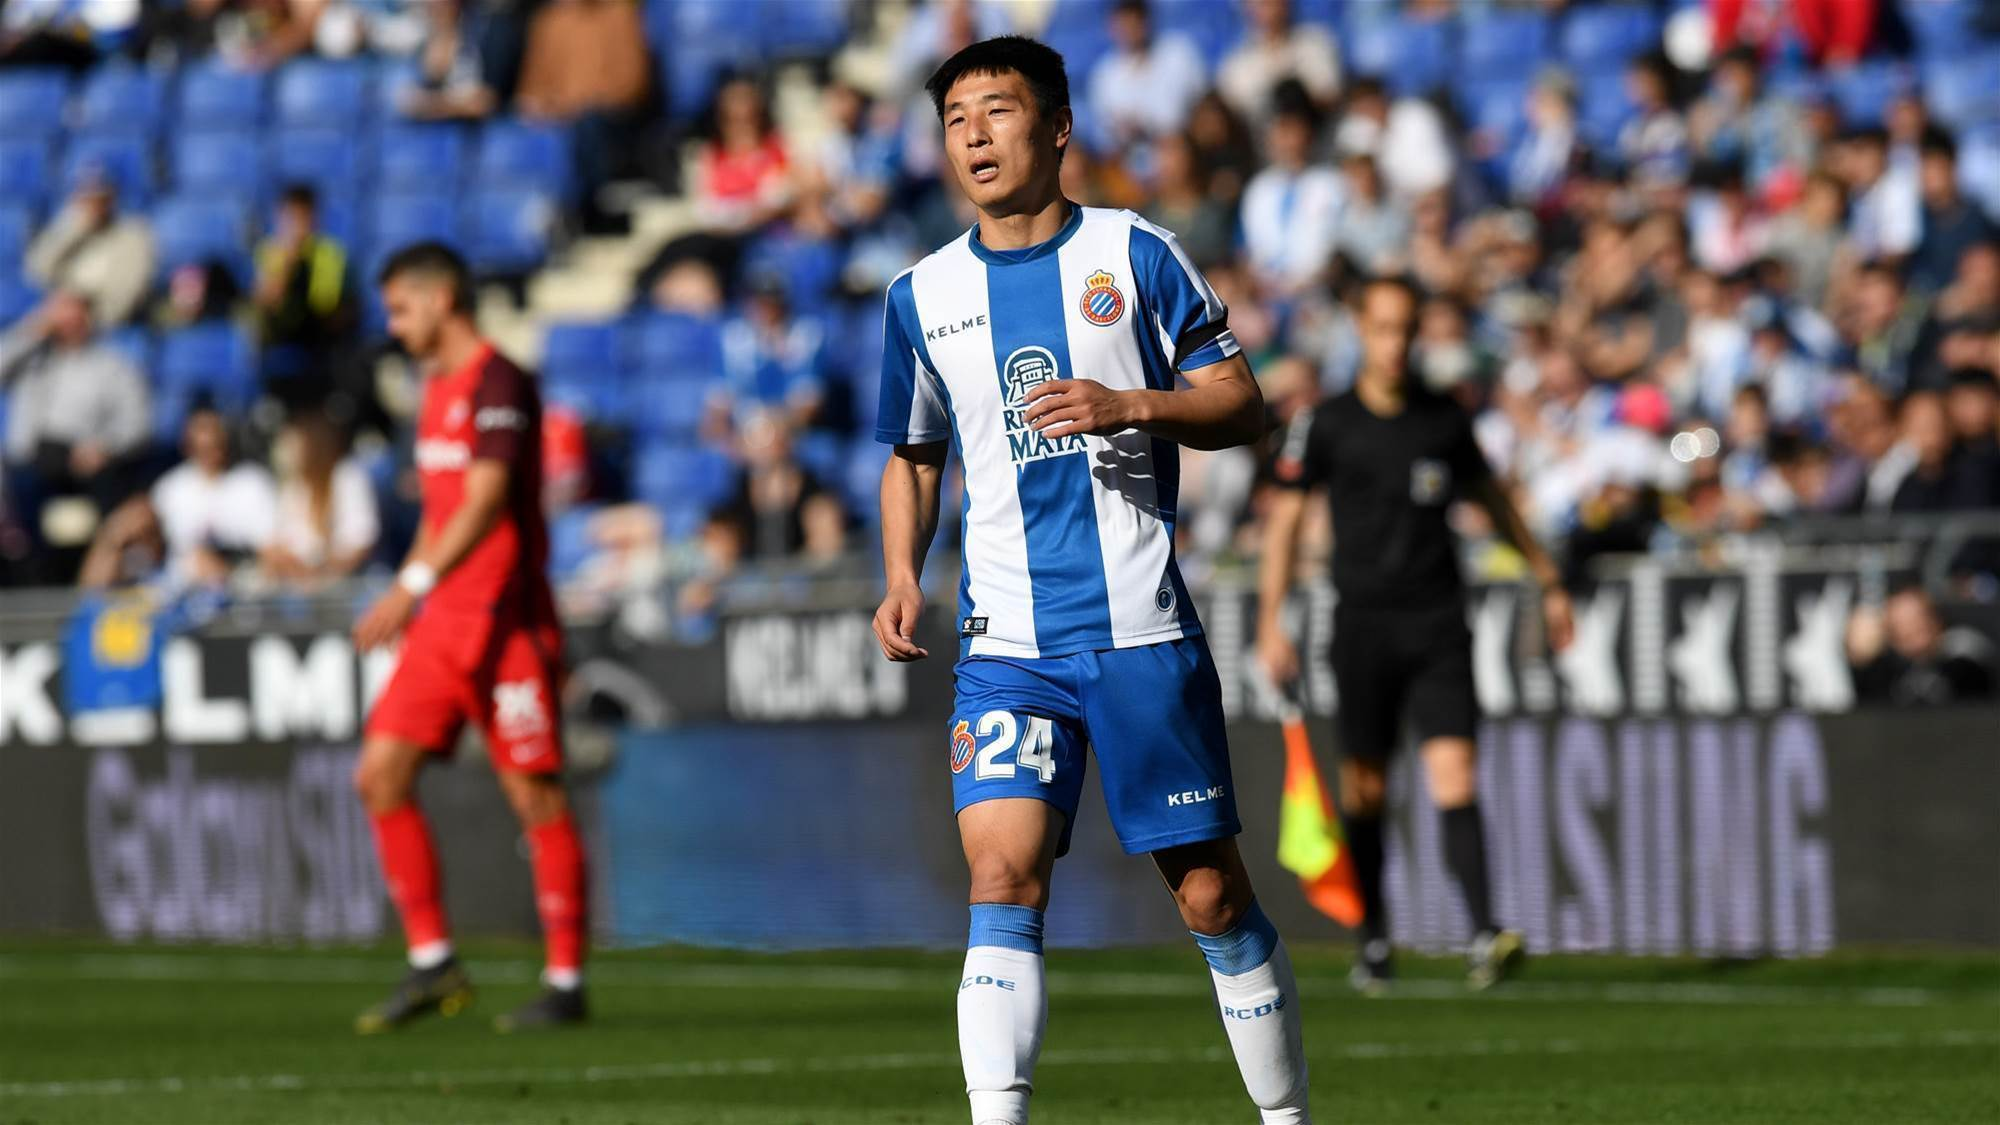 Espanyol star Wu Lei faces off with Lionel Messi in the Catalan Derby